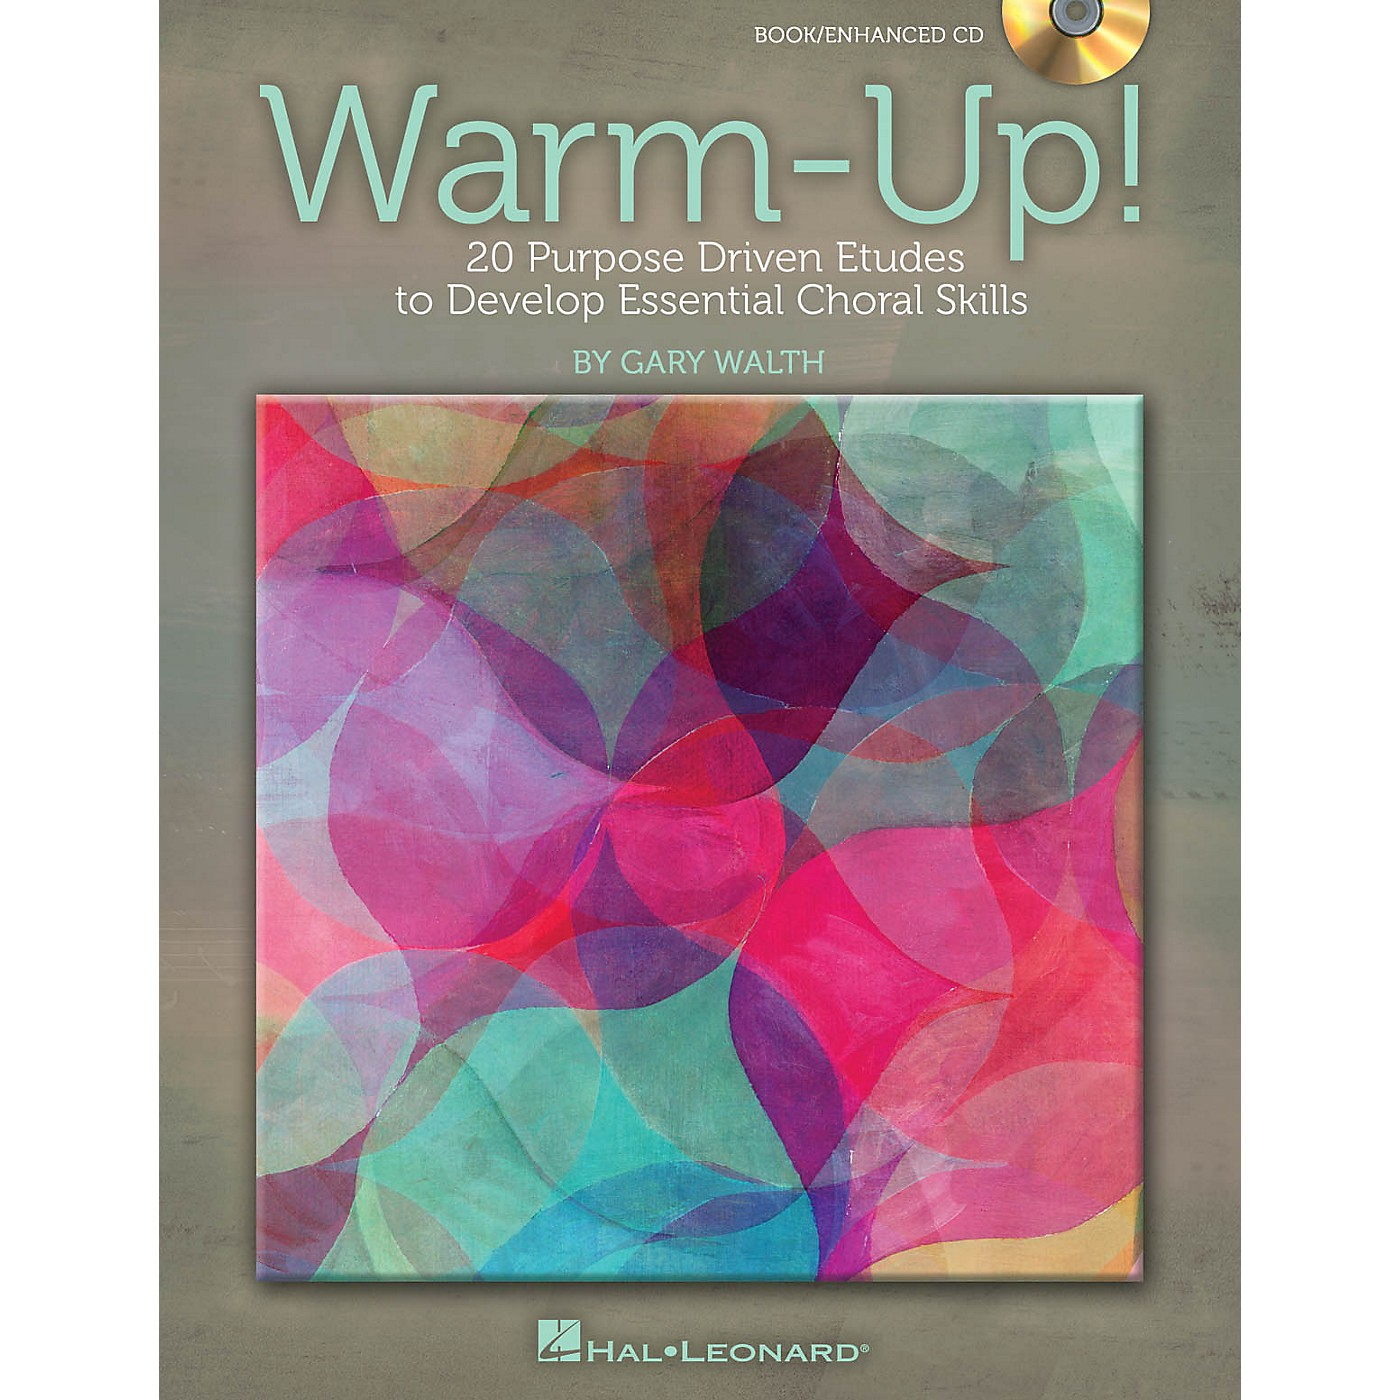 Hal Leonard Warm-Up! (20 Purpose Driven Etudes to Develop Essential Choral Skills) Book and CD pak thumbnail